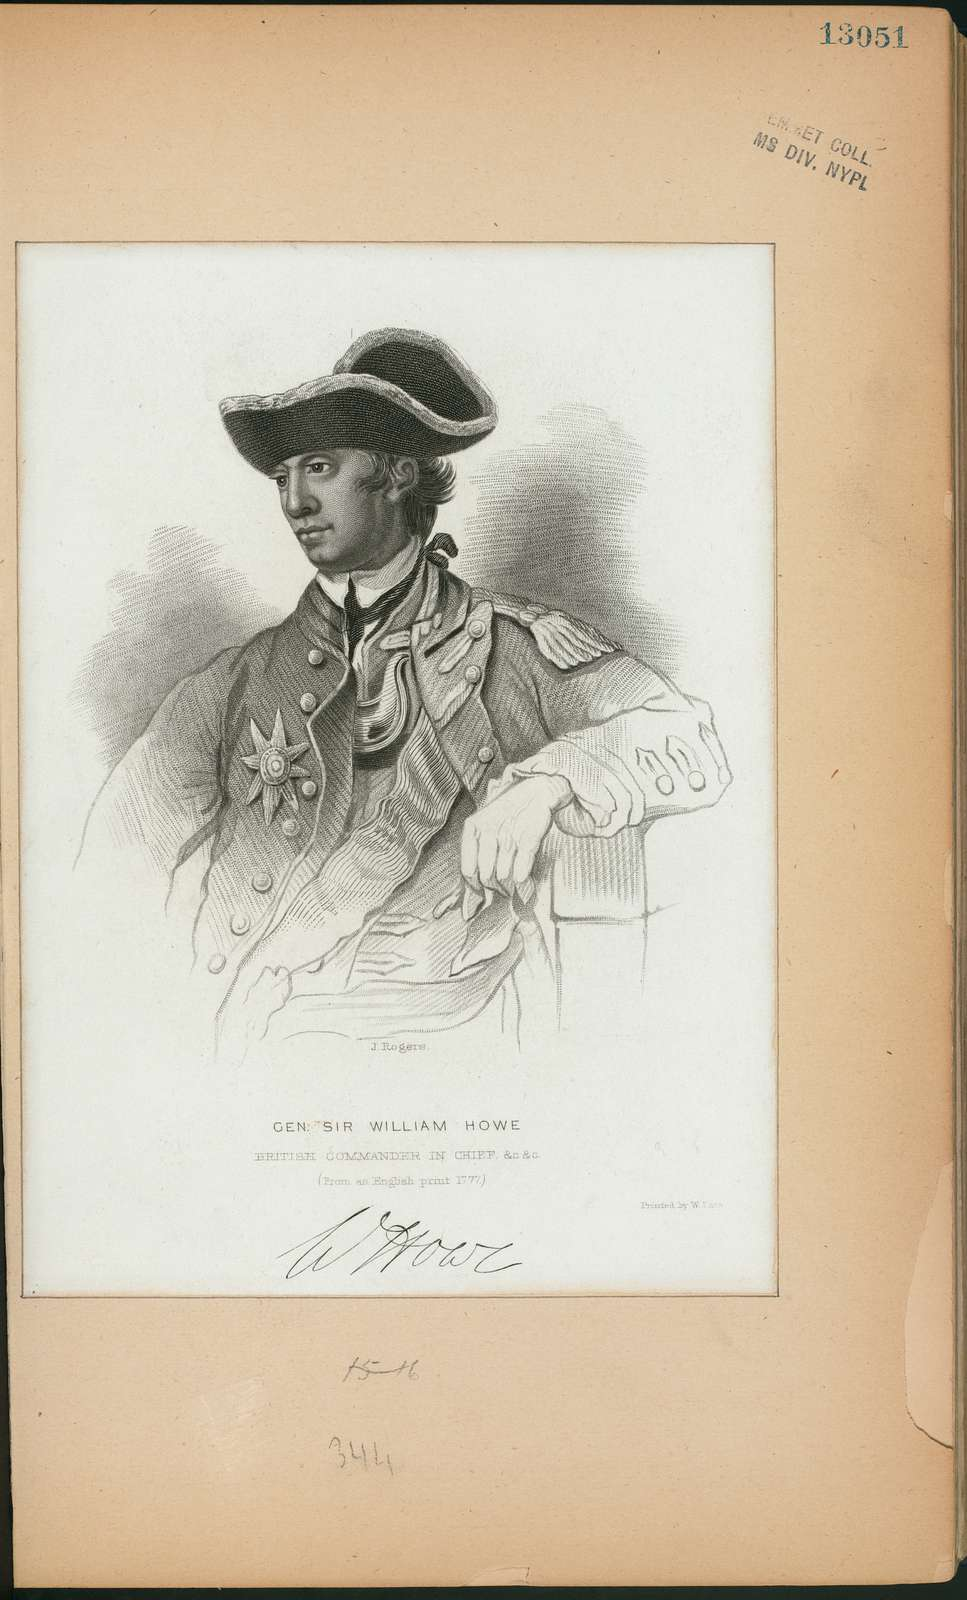 Gen. Sir William Howe, British commander in chief.